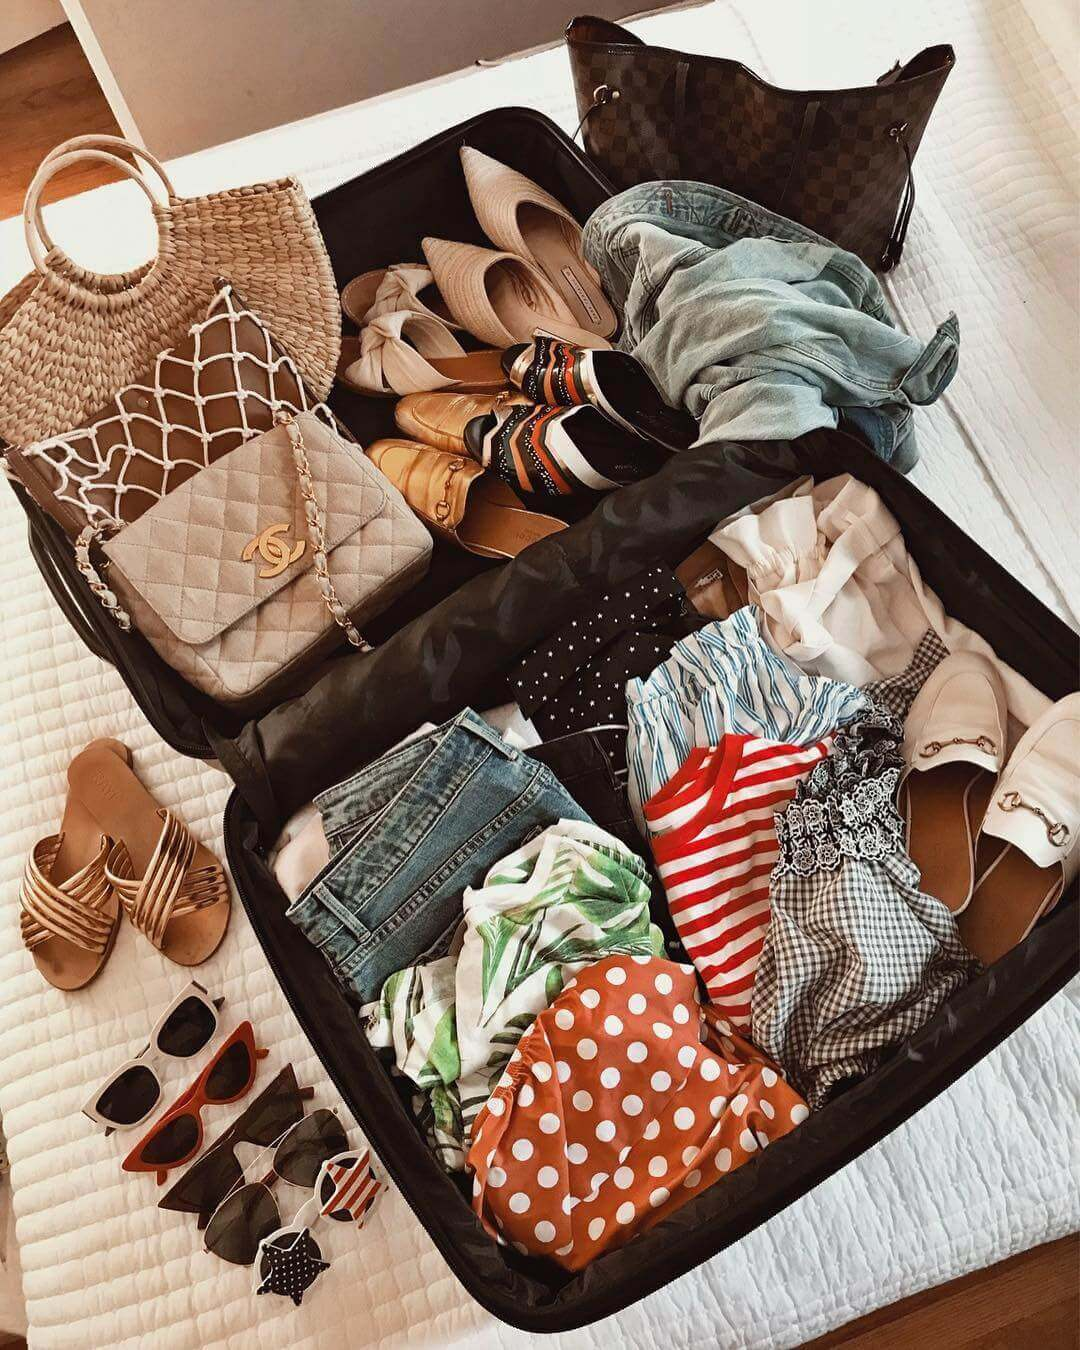 The Art of Packing Light for your upcoming trip to Europe!